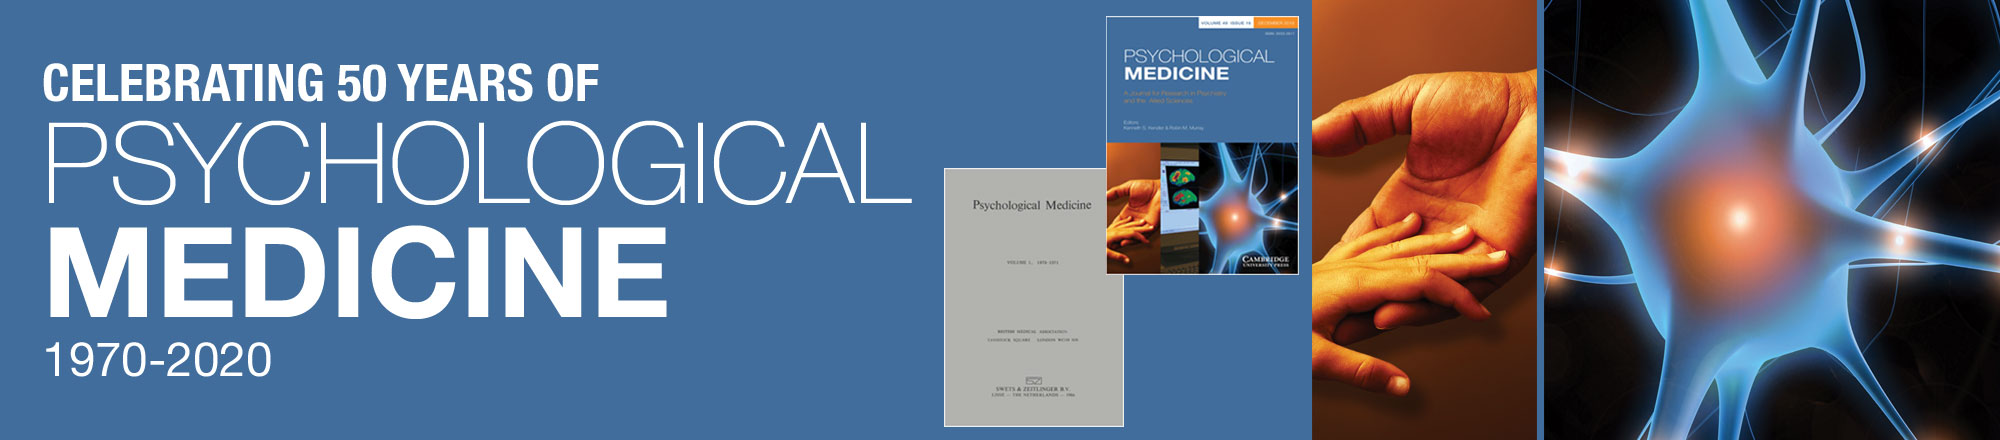 50th anniversary for Psychological Medicine